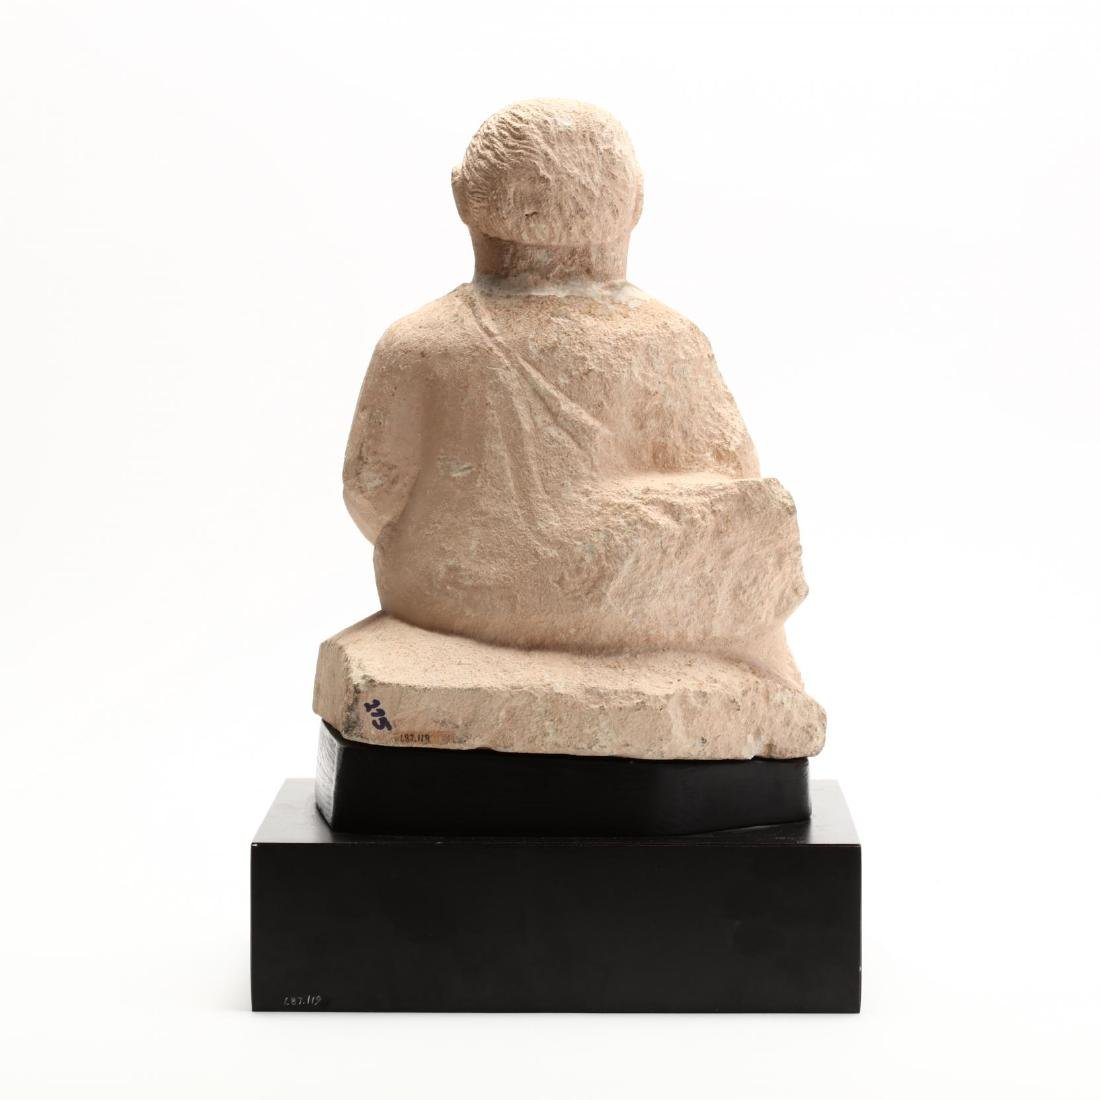 Cypriot Seated Limestone Figure, Ex. Cesnola Collection - 5